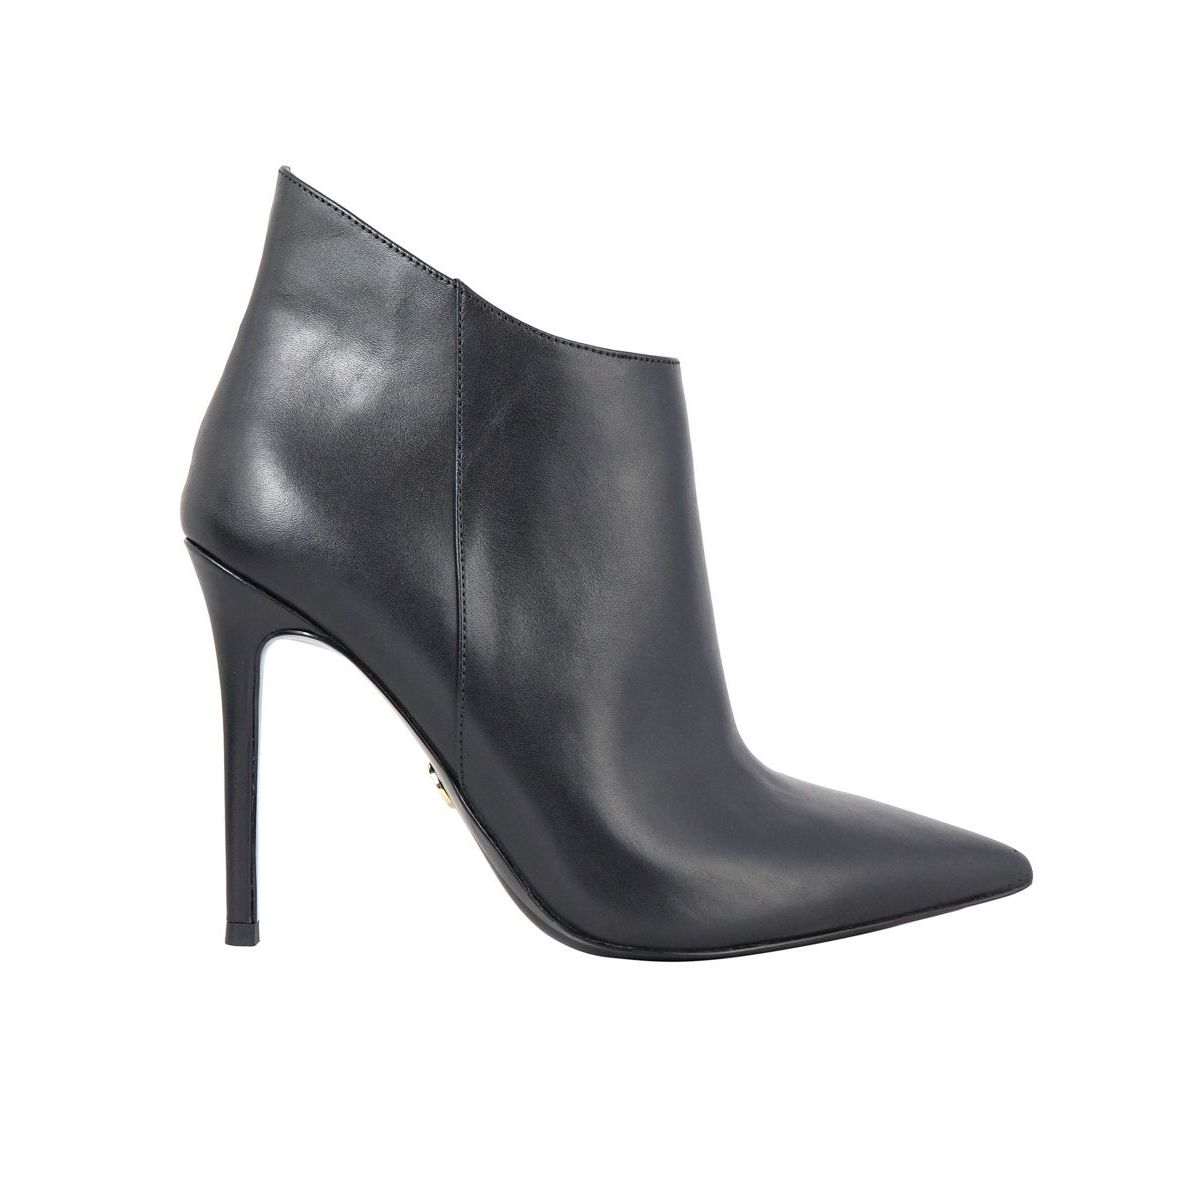 ANTONIA ankle boots in leather with high heel Black Michael Kors